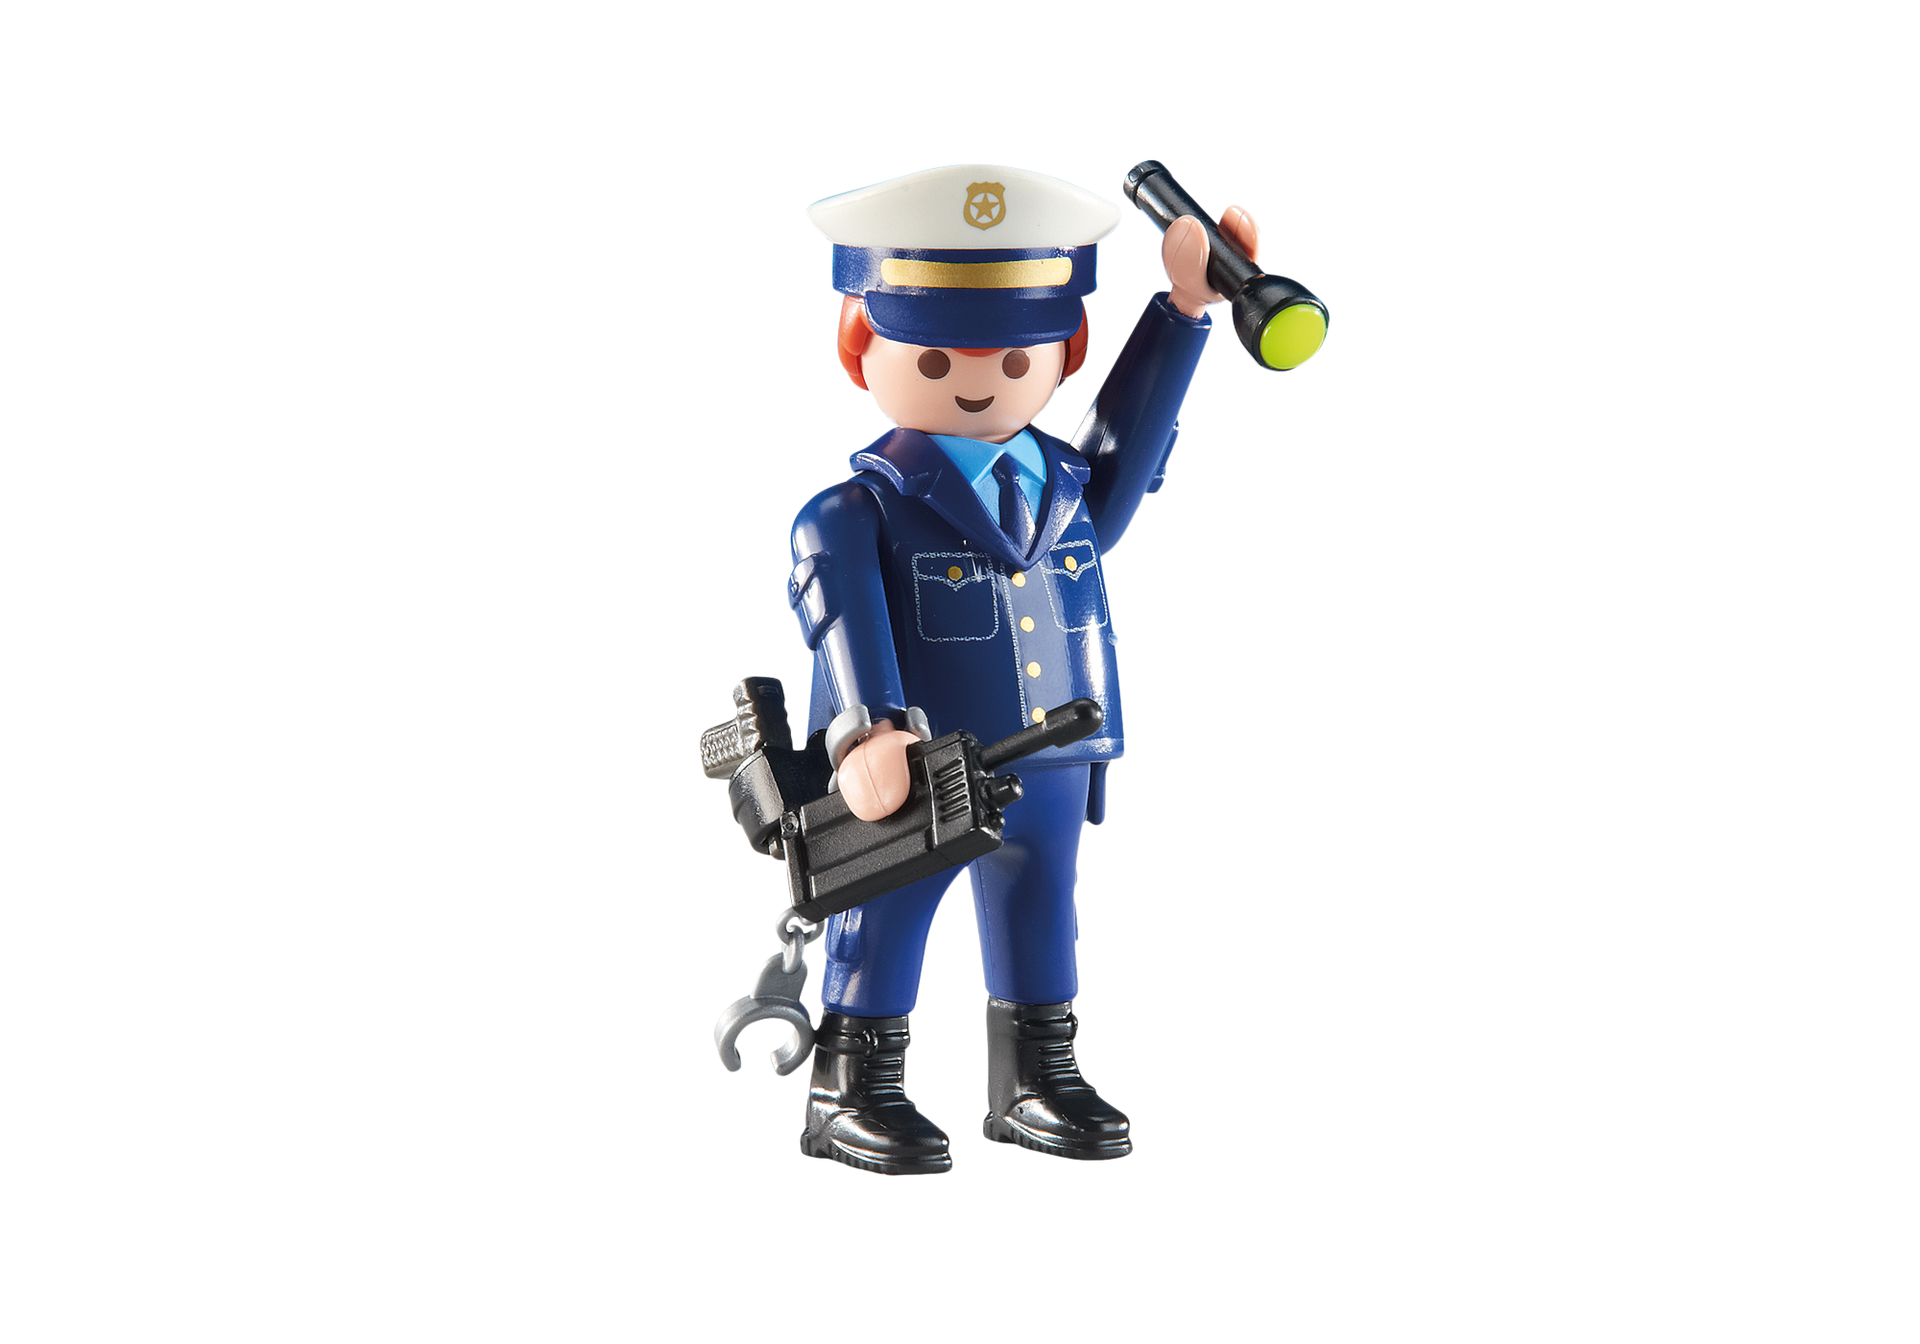 police boss - Playmobile Police